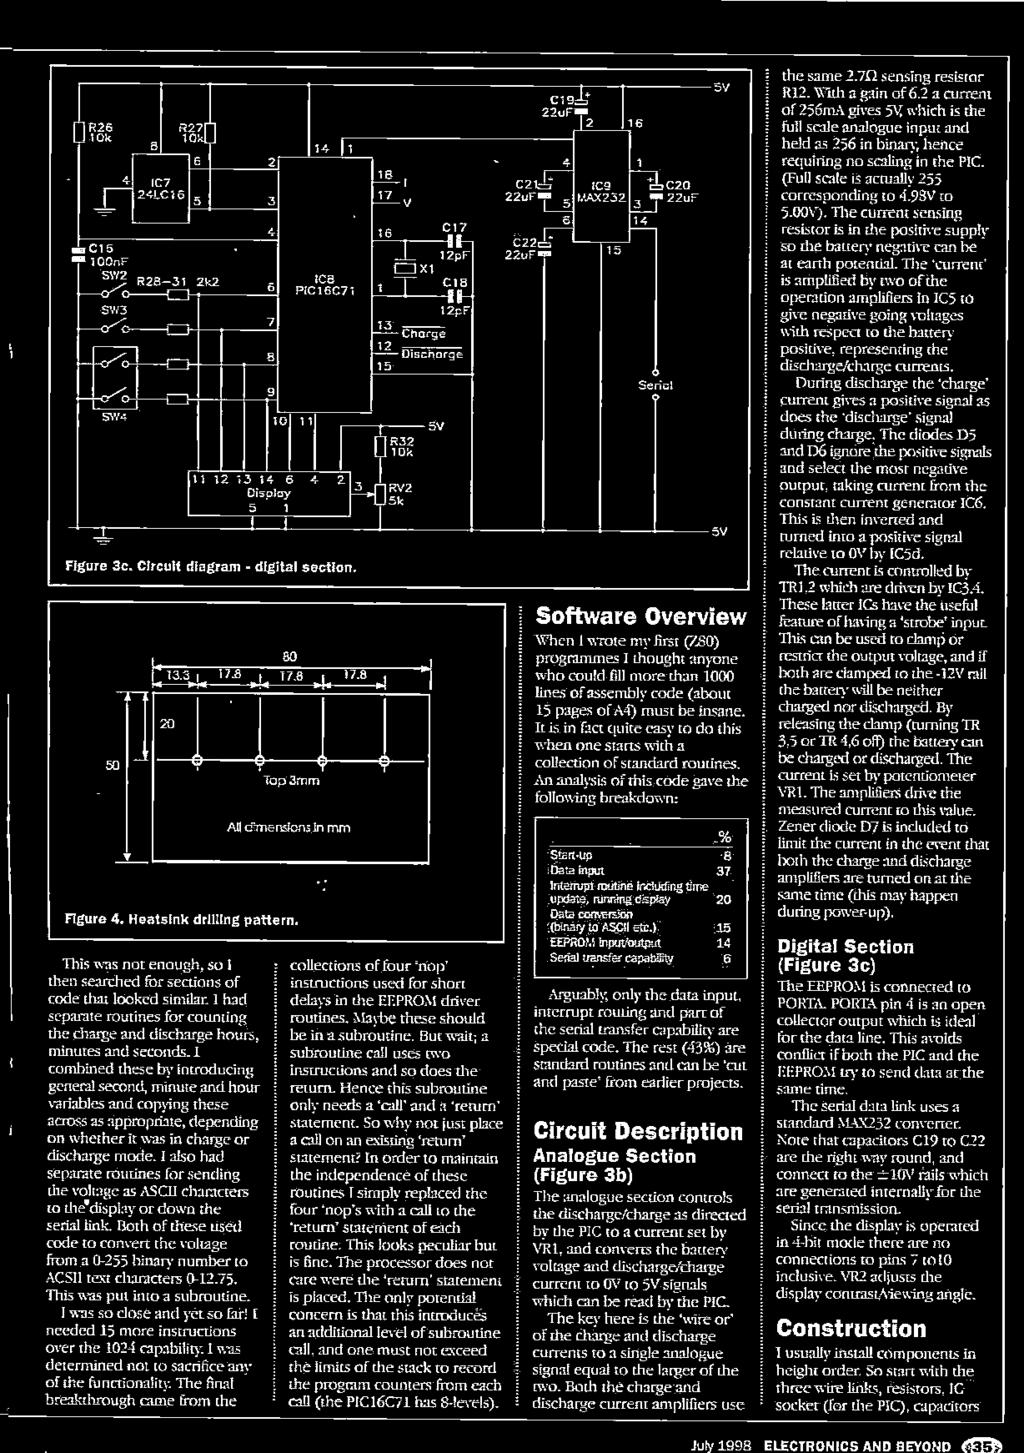 Ijlkti Iikjkfki Pdf 71 Kb Jpeg 12 Volt Zener Voltage Regulated Charger Circuit Schematic This Was Not Enough So I Then Searched For Sections Of Code Tiiai Looked Similar